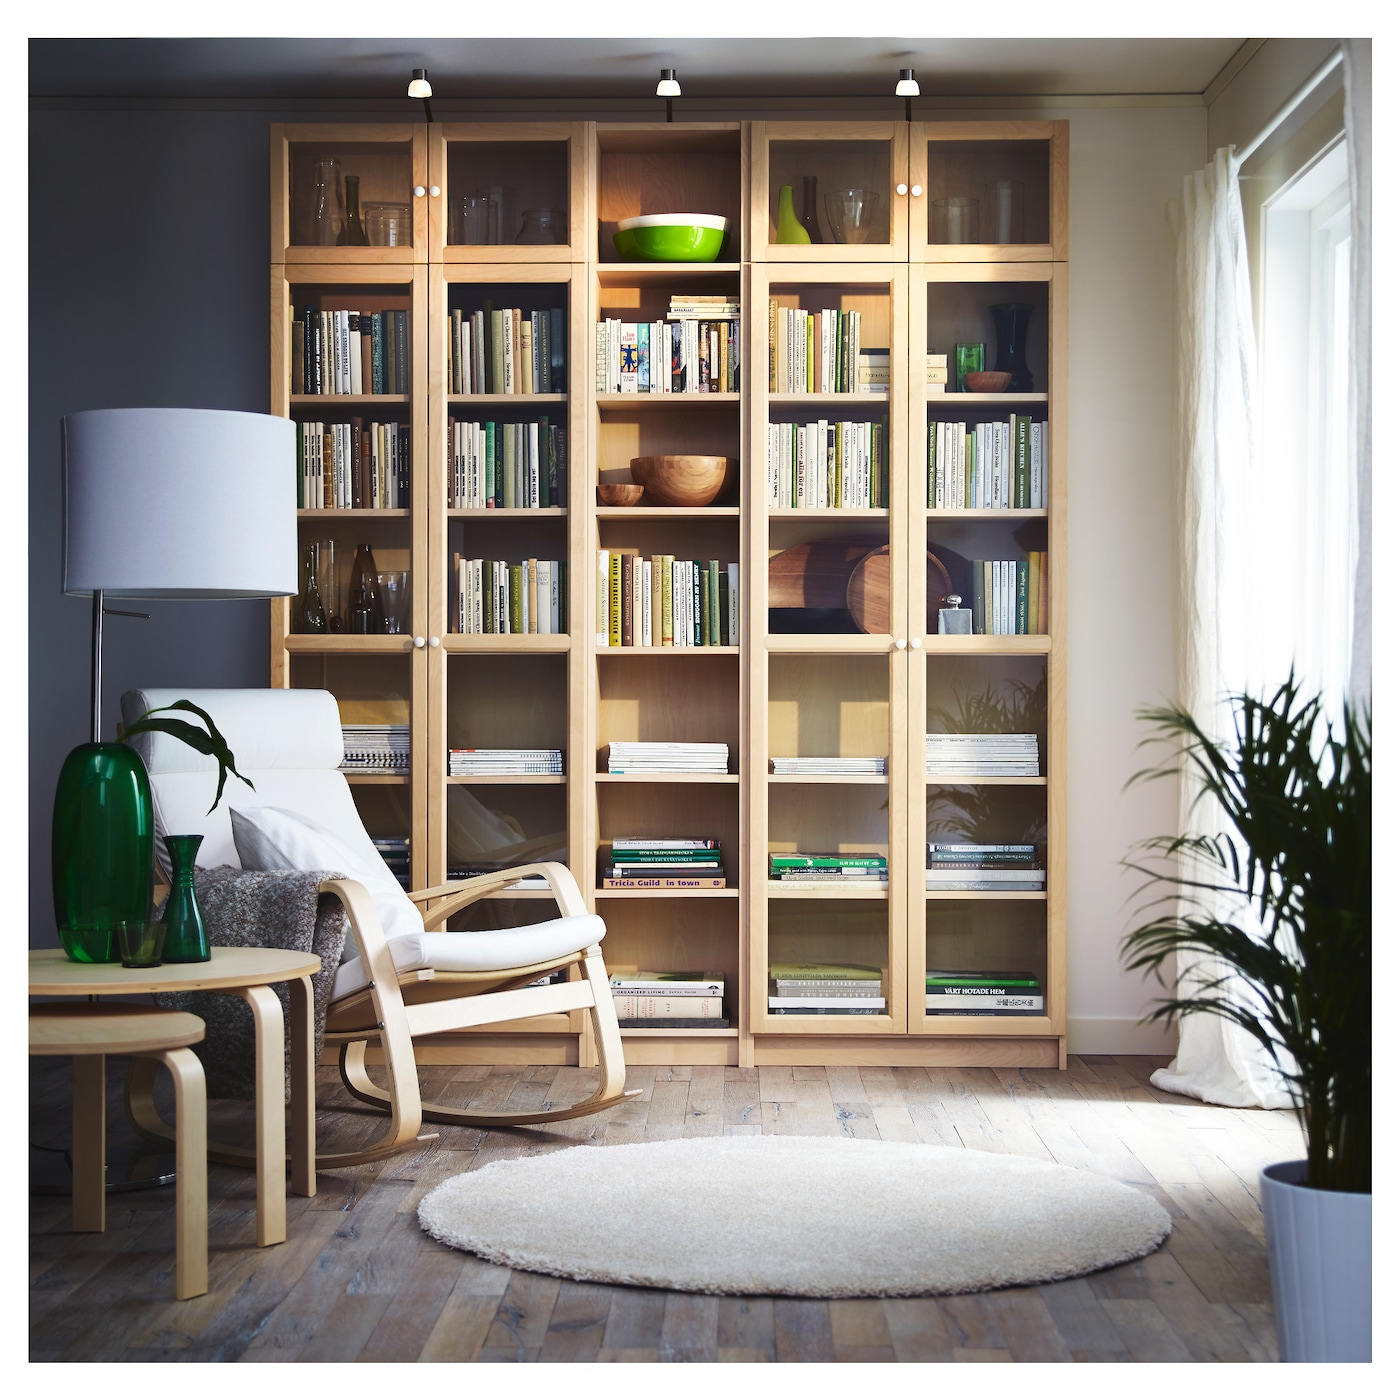 Ikea Billy Oxberg Bookcase Adjule Shelves So You Can Customise Your Storage As Needed